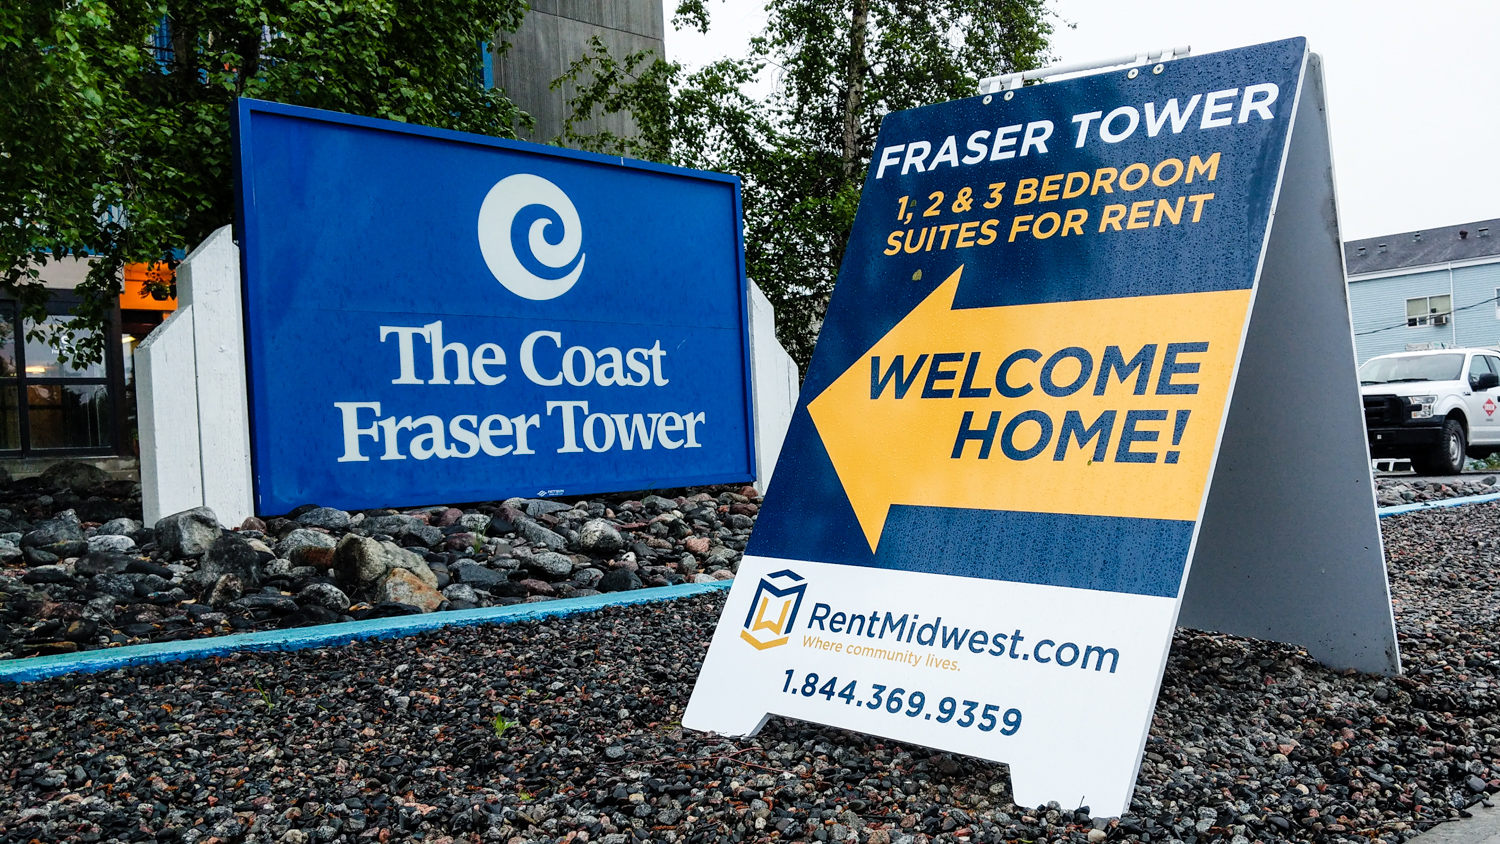 A sign advertising apartments for rent sits beside the Coast Fraser Tower hotel